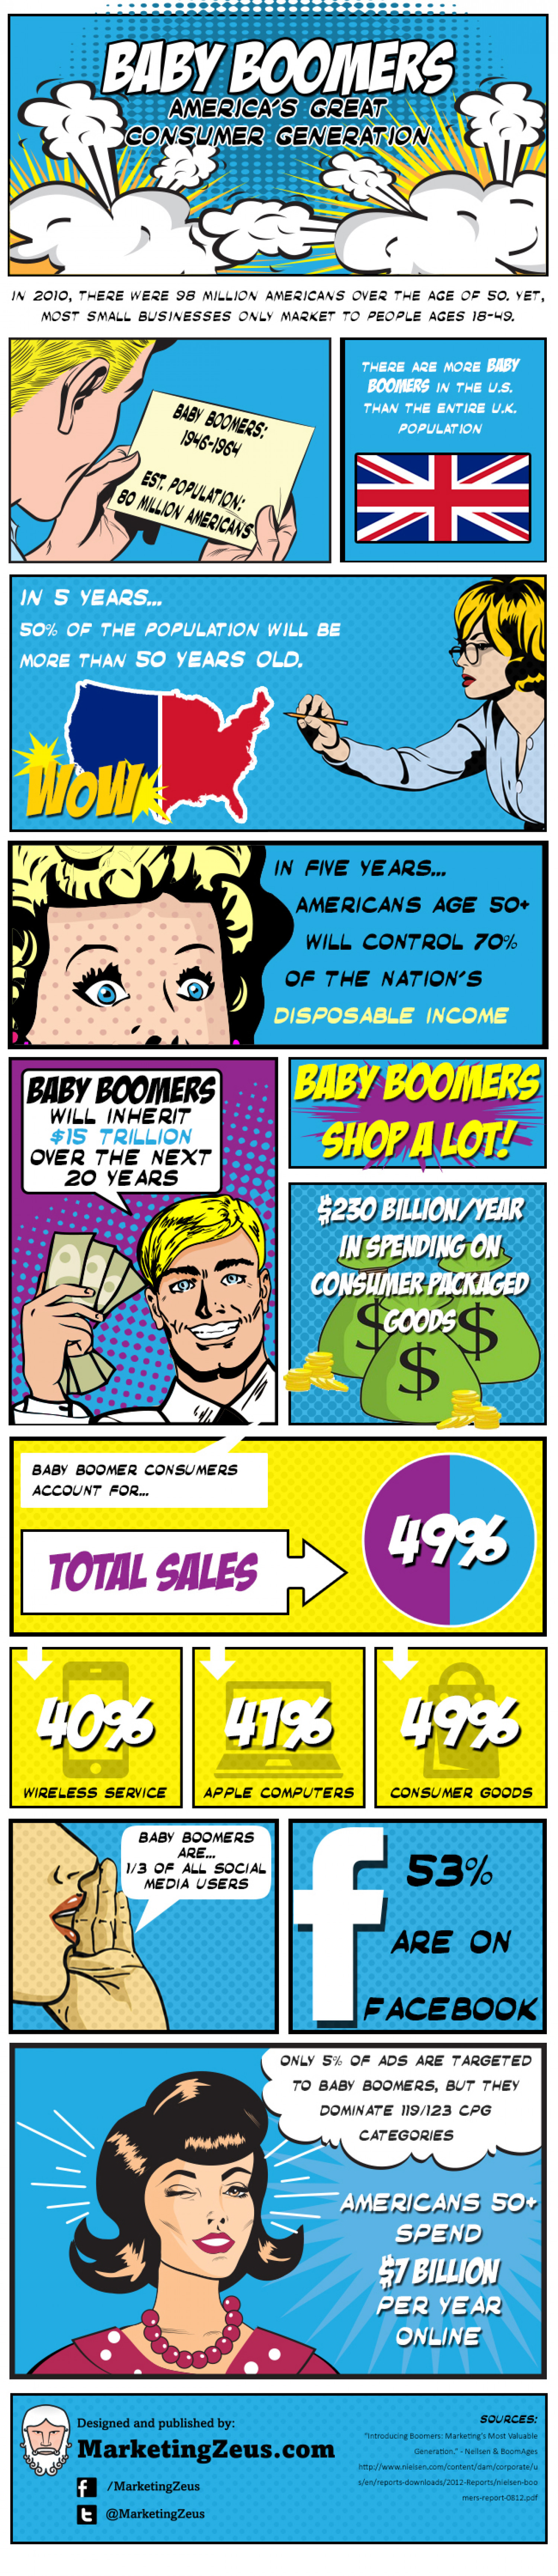 Baby Boomers: America's Greatest Consumer Generation Infographic